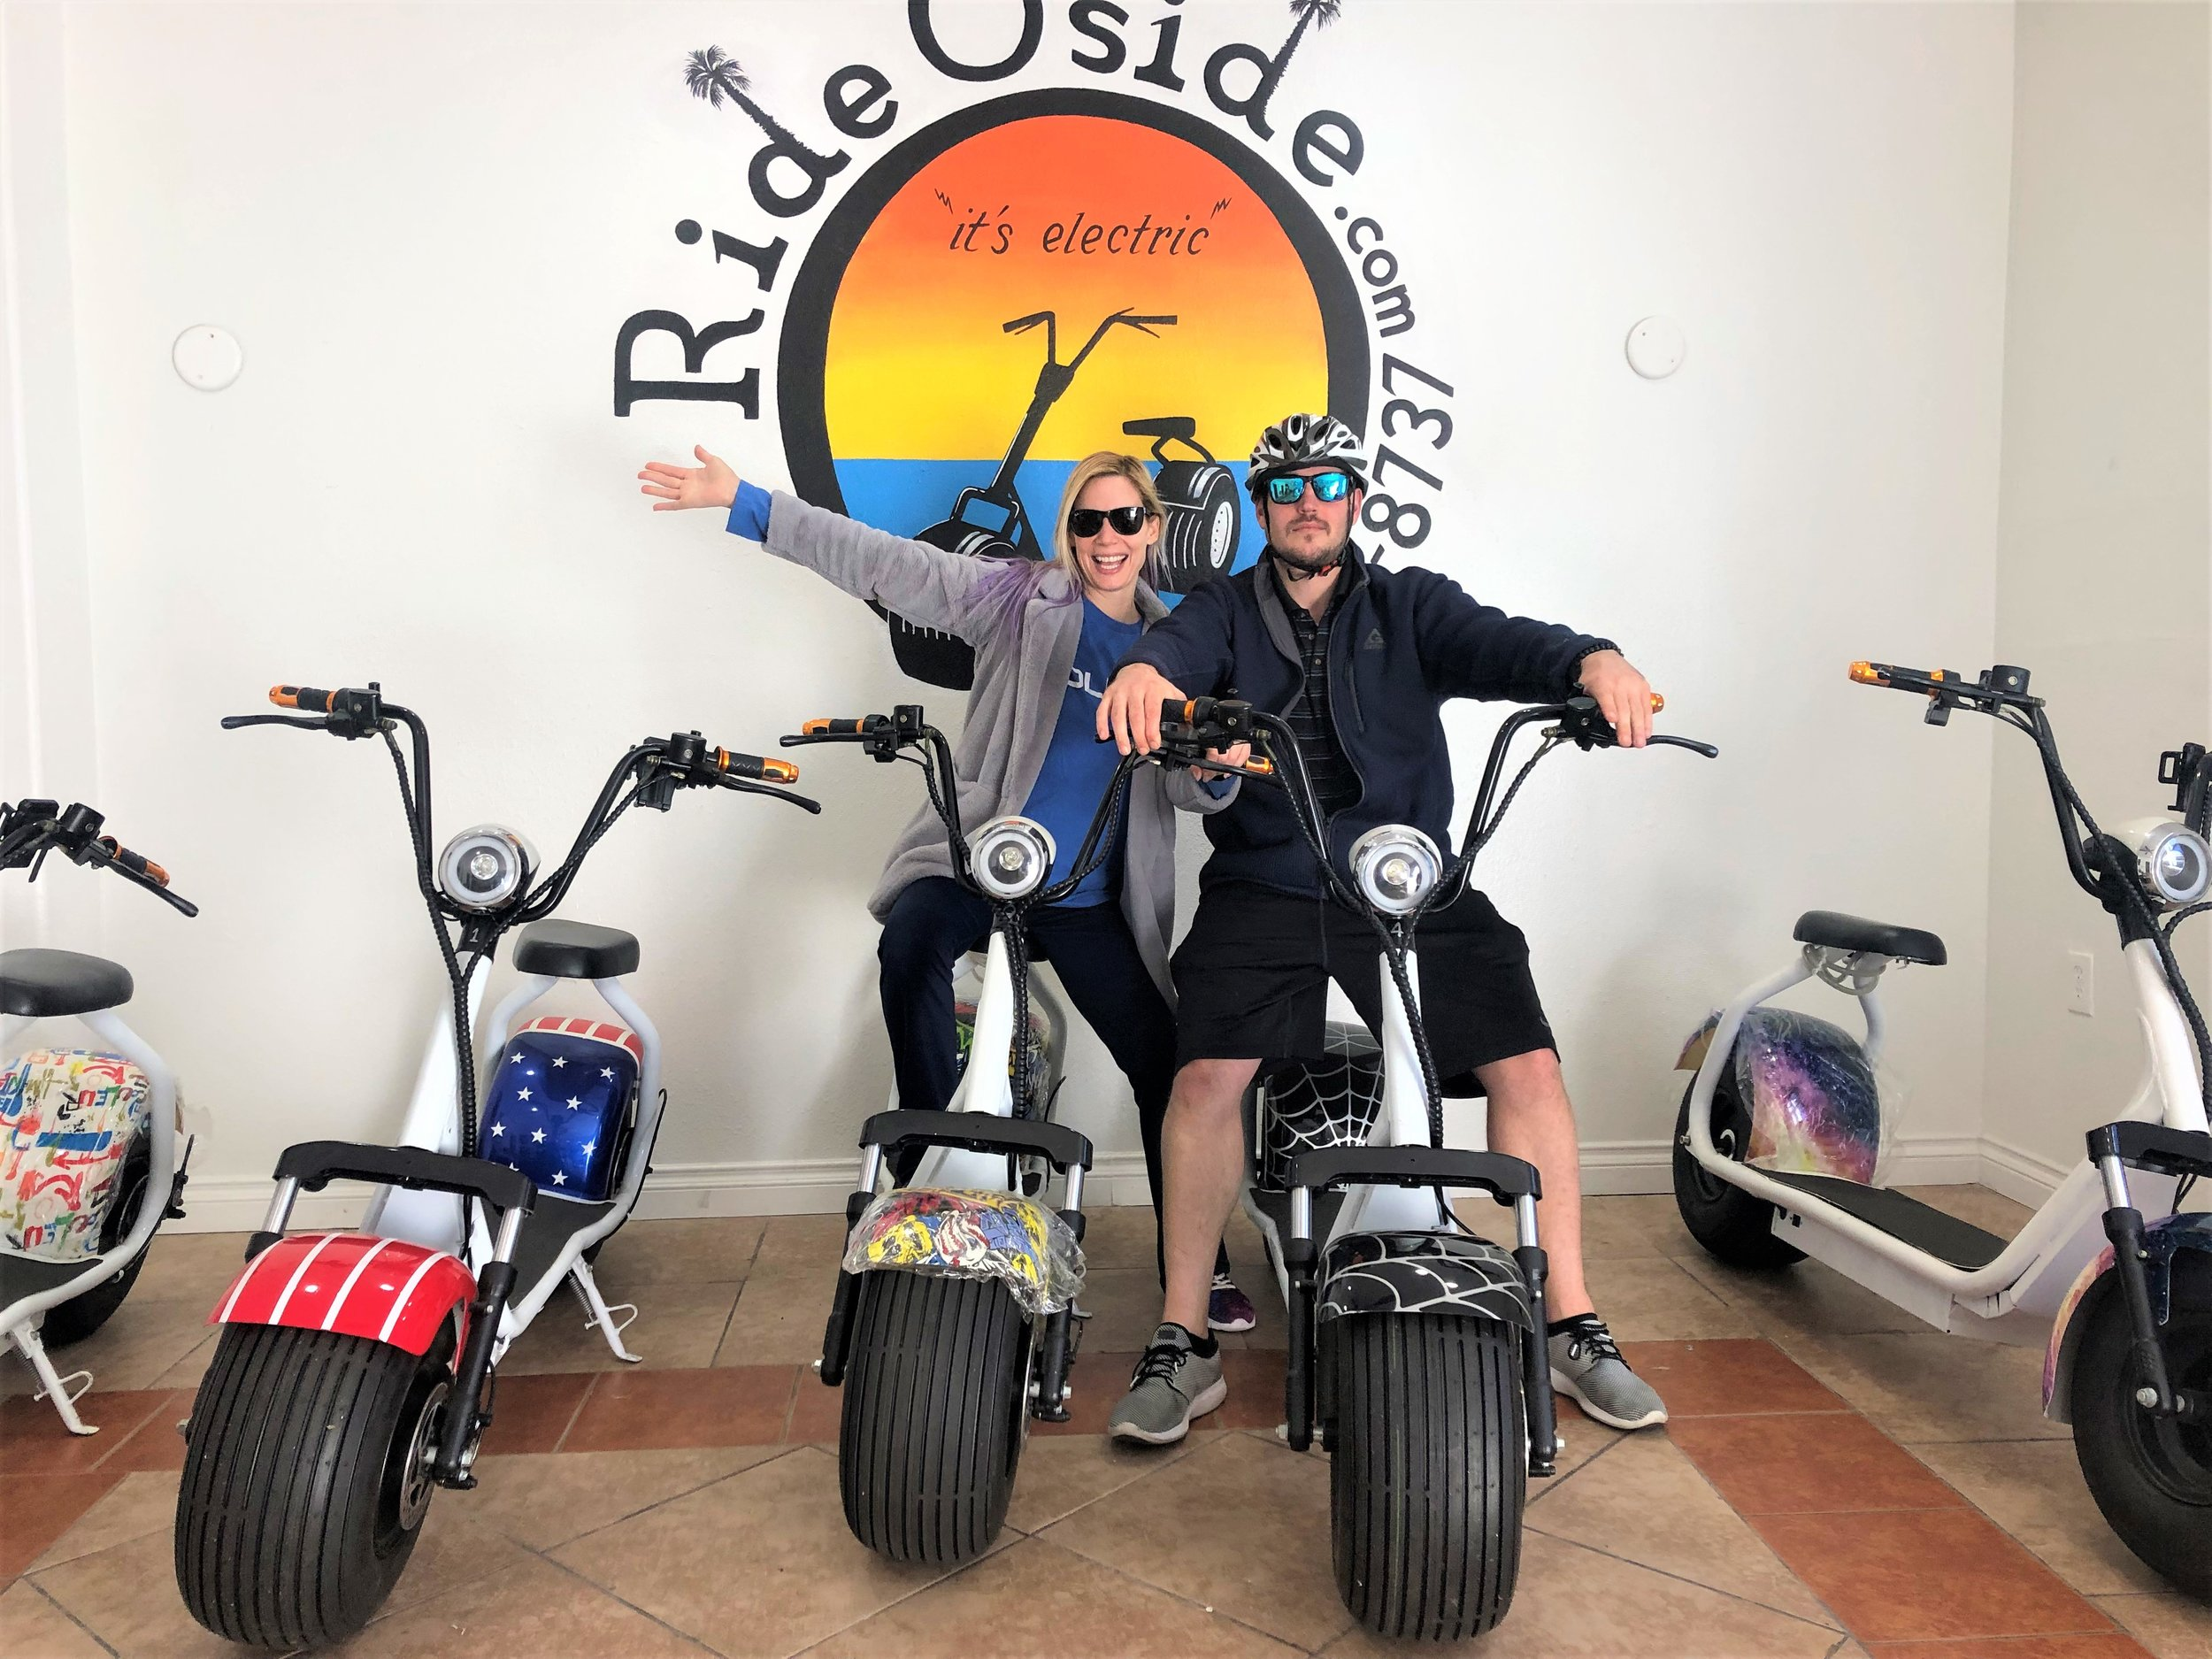 fat tire electric-scooter rentals.JPG